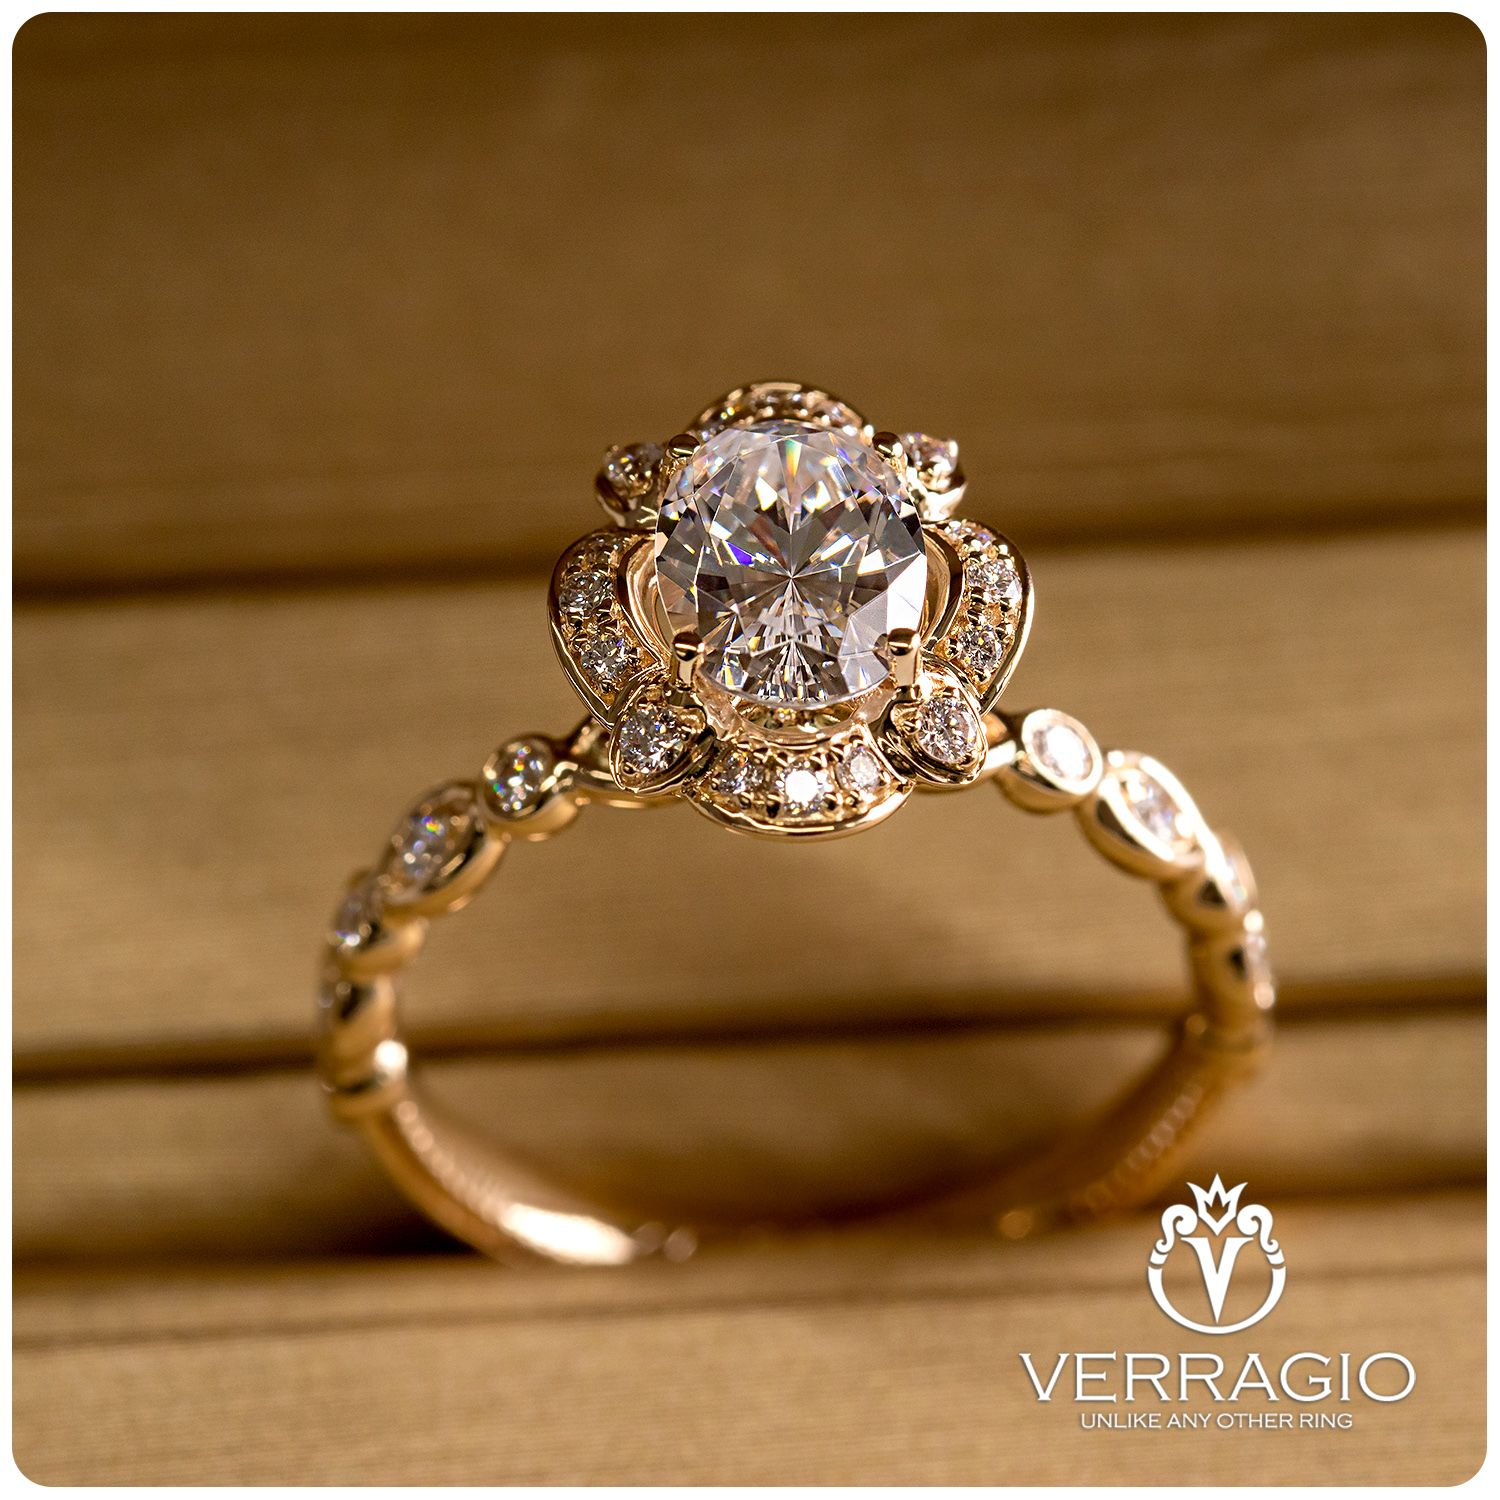 Verragio Engagement Rings Yellow Gold Engagement Rings Vintage Verragio Engagement Rings Floral Engagement Ring